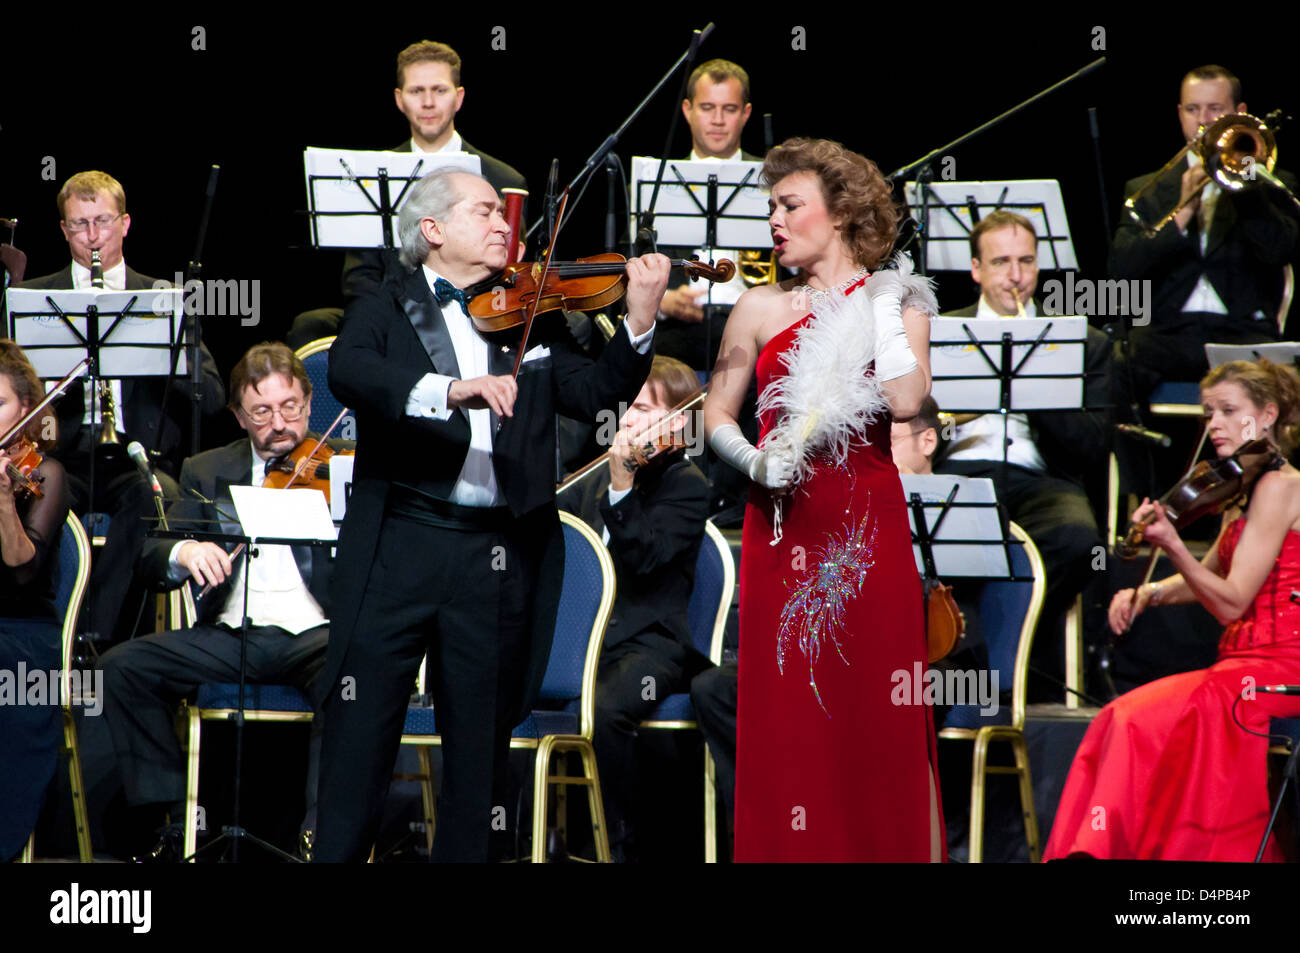 Conductor Peter Guth, singer Monica Mosser and Strauss Festival Orchestra Vienna in concert Crocus City Hall. Moscow - Stock Image